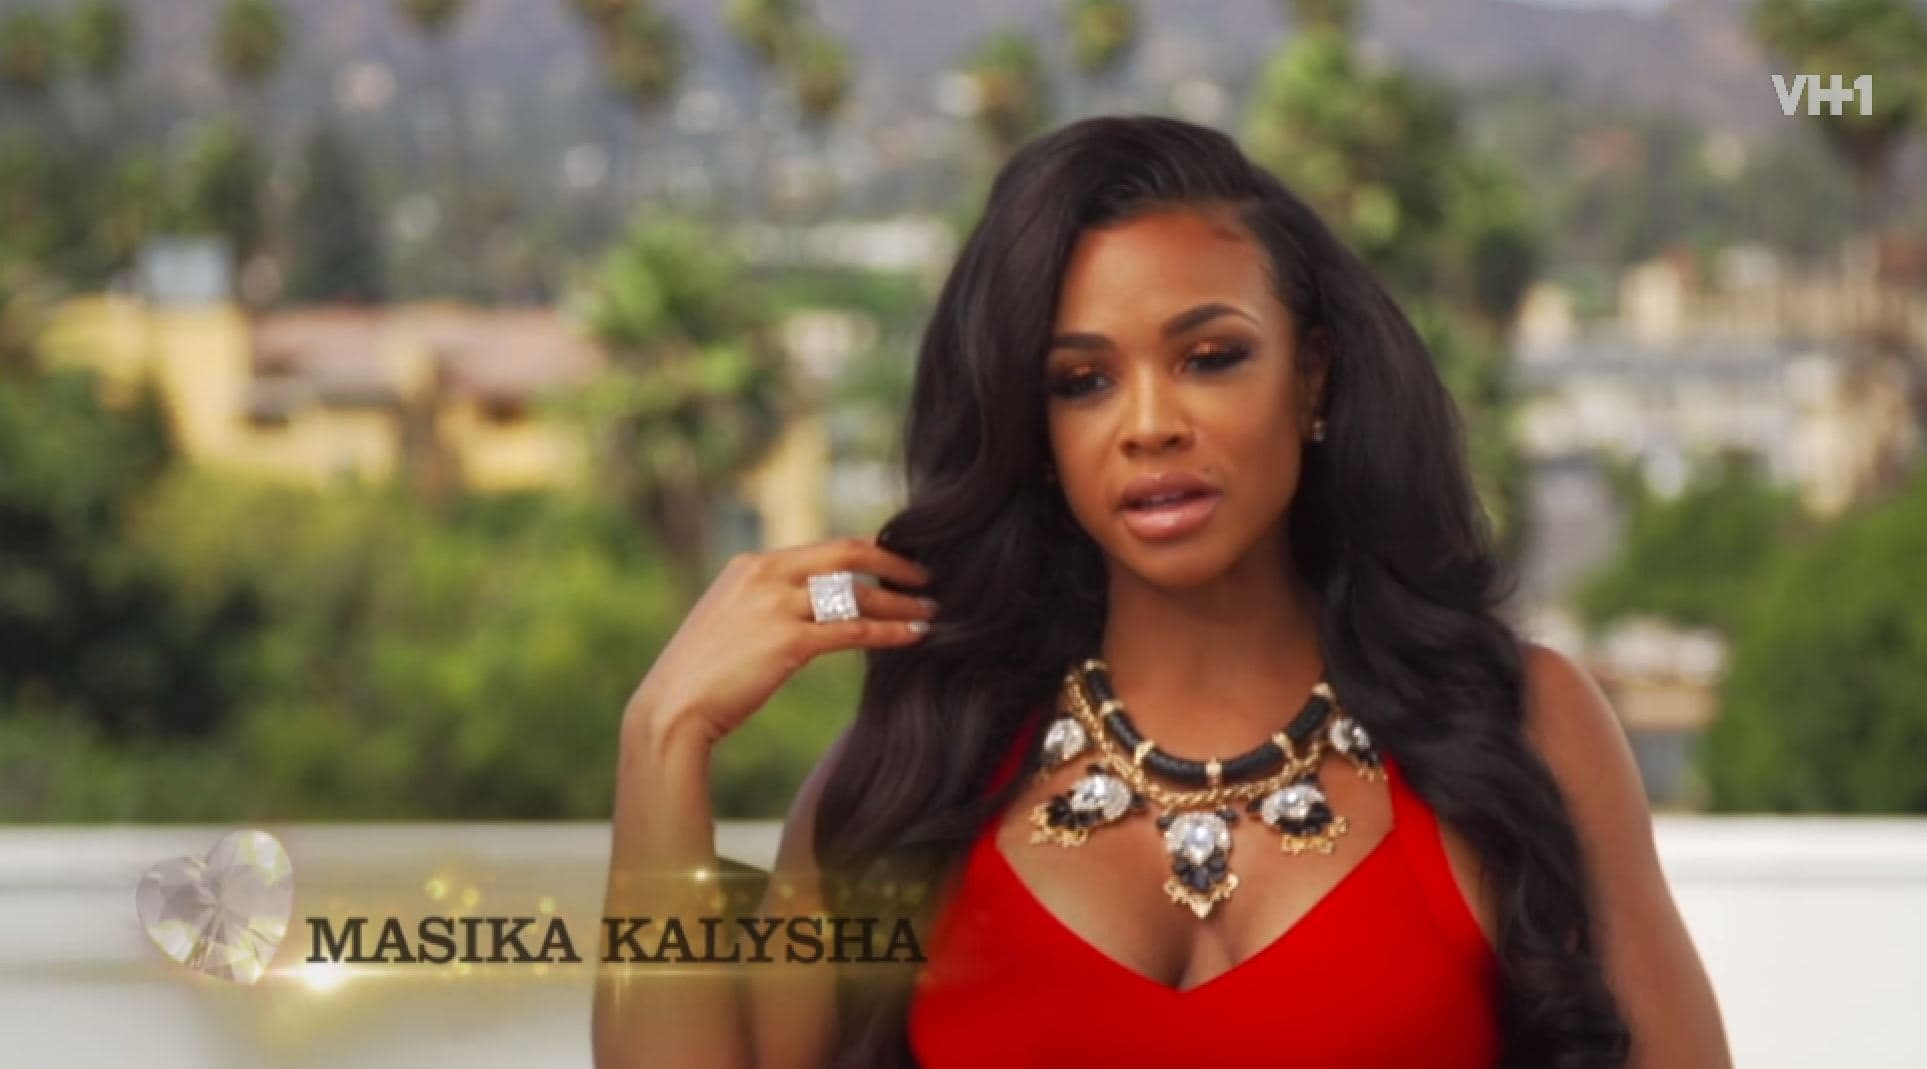 Masika Kalysha Before Plastic Surgery photo - 1